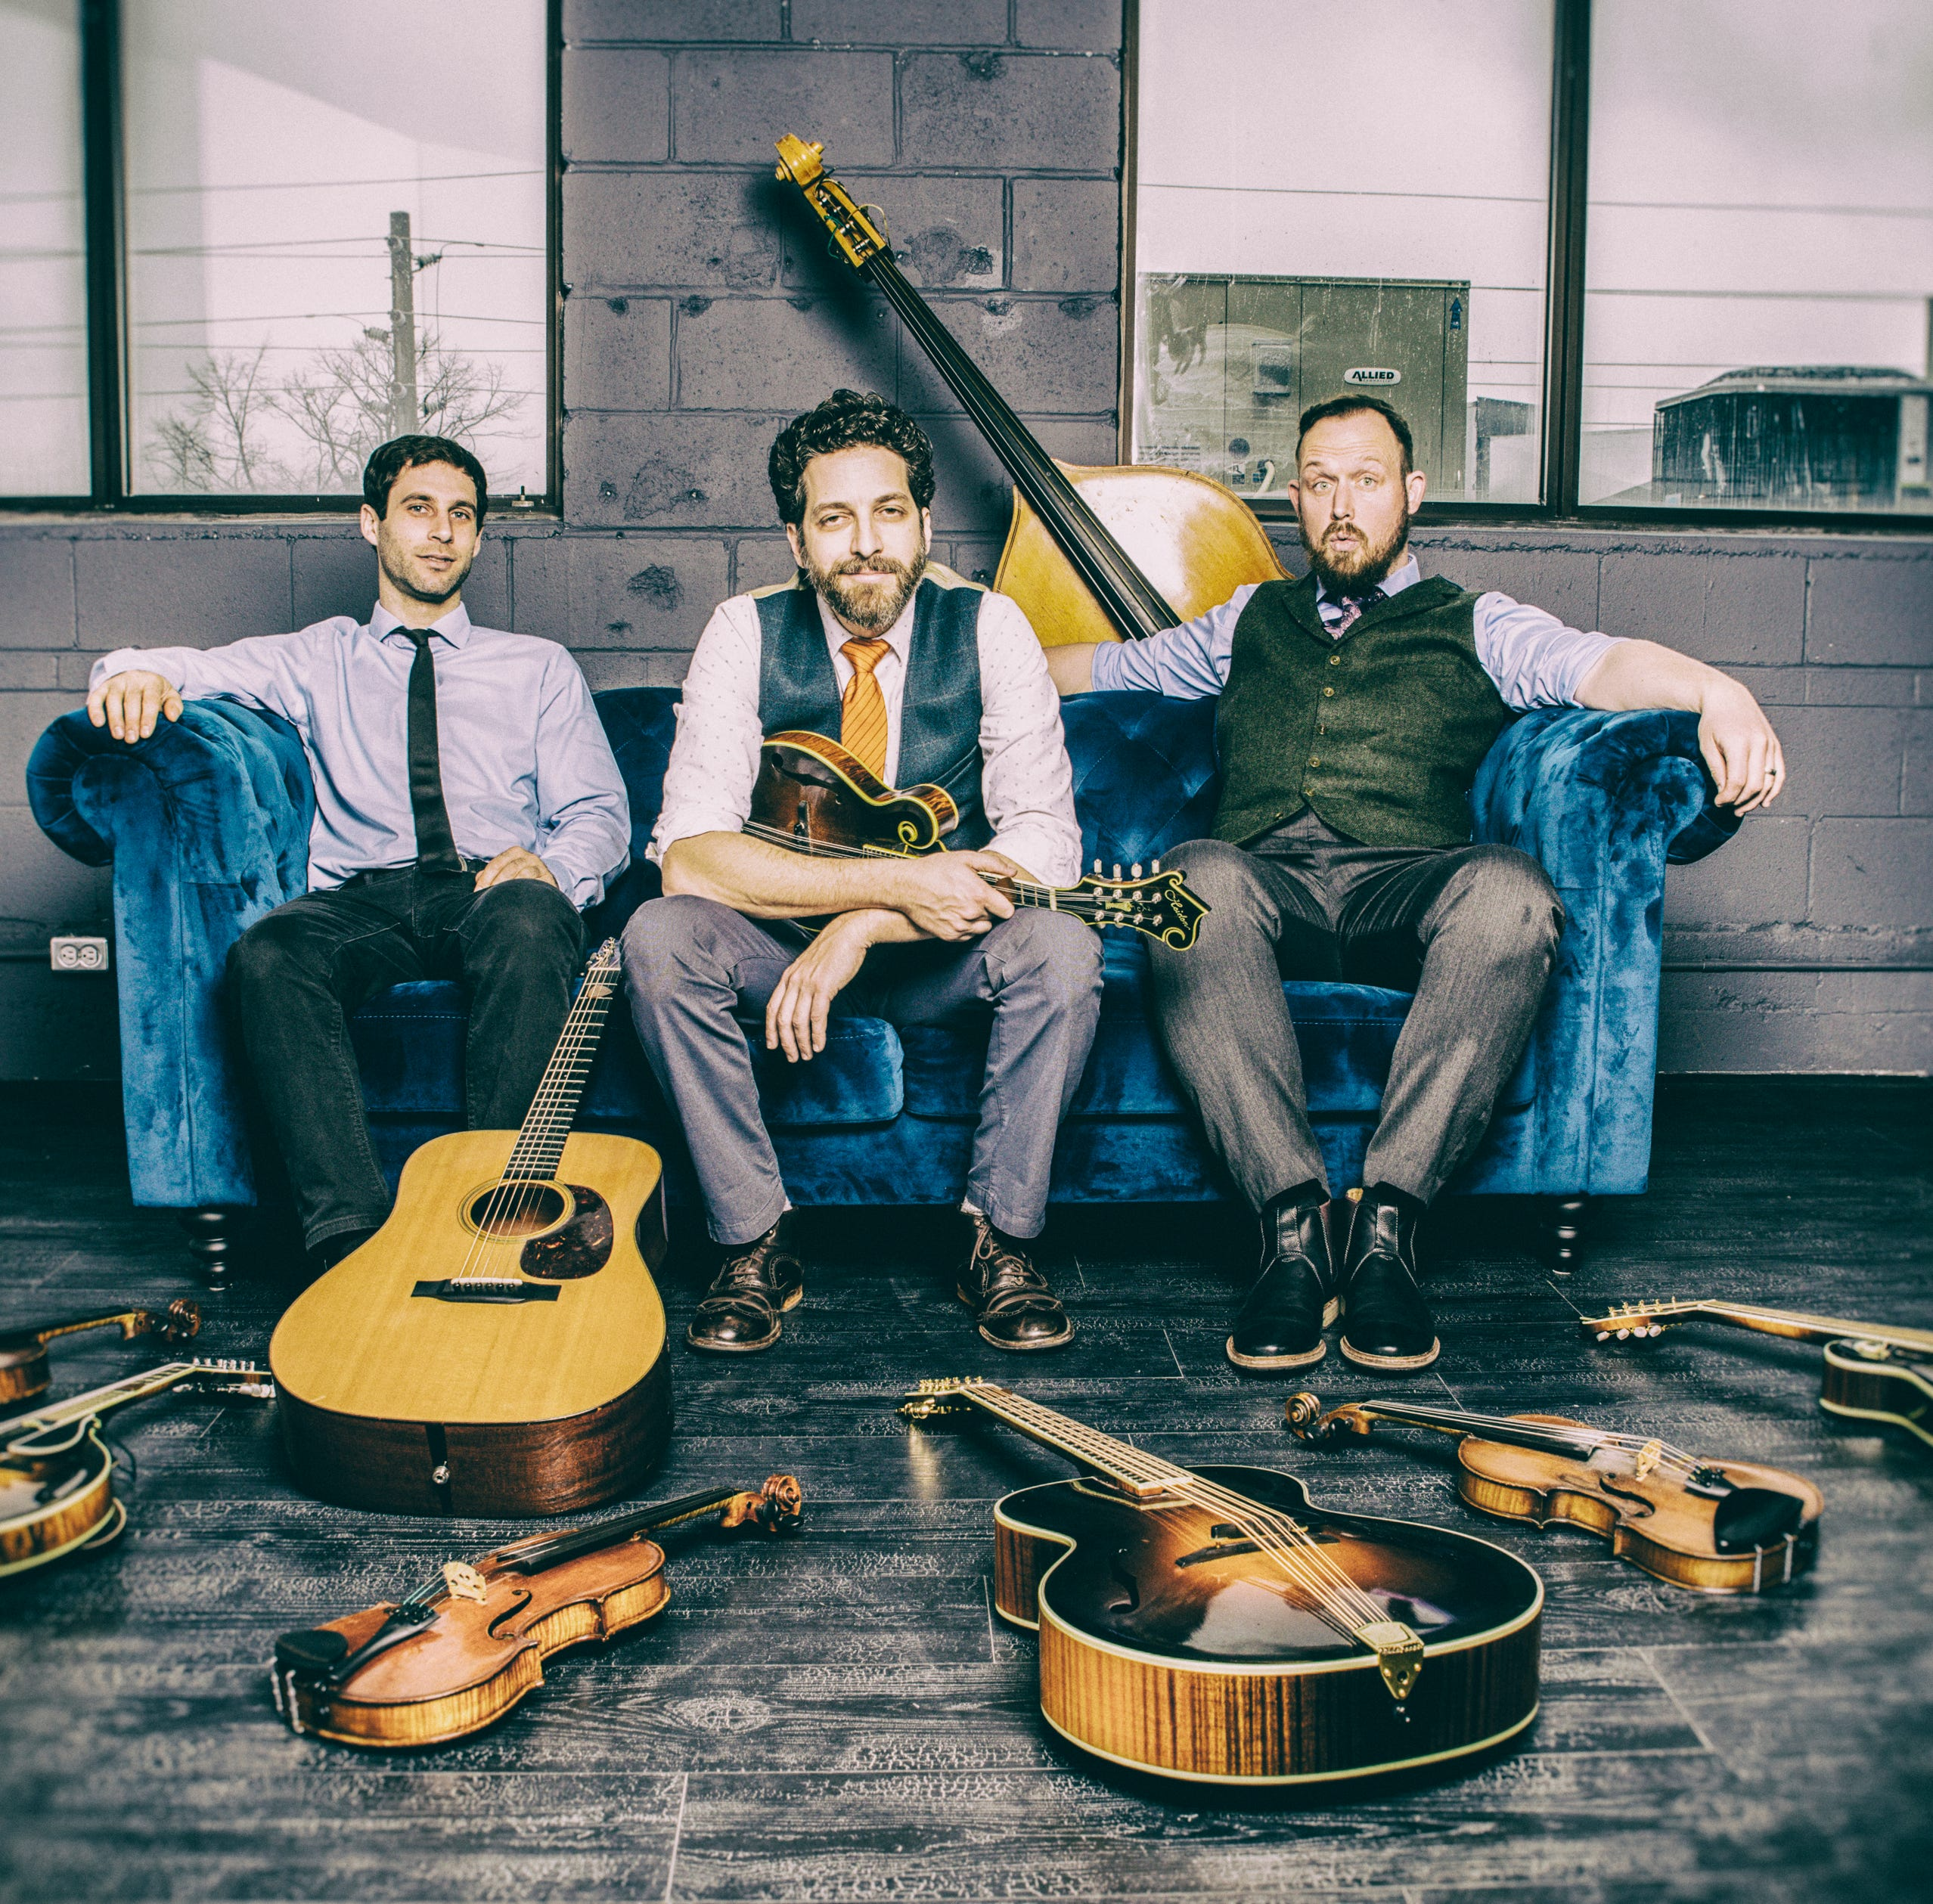 Andrew Collins Trio to blend bluegrass, folk at Clemens Center